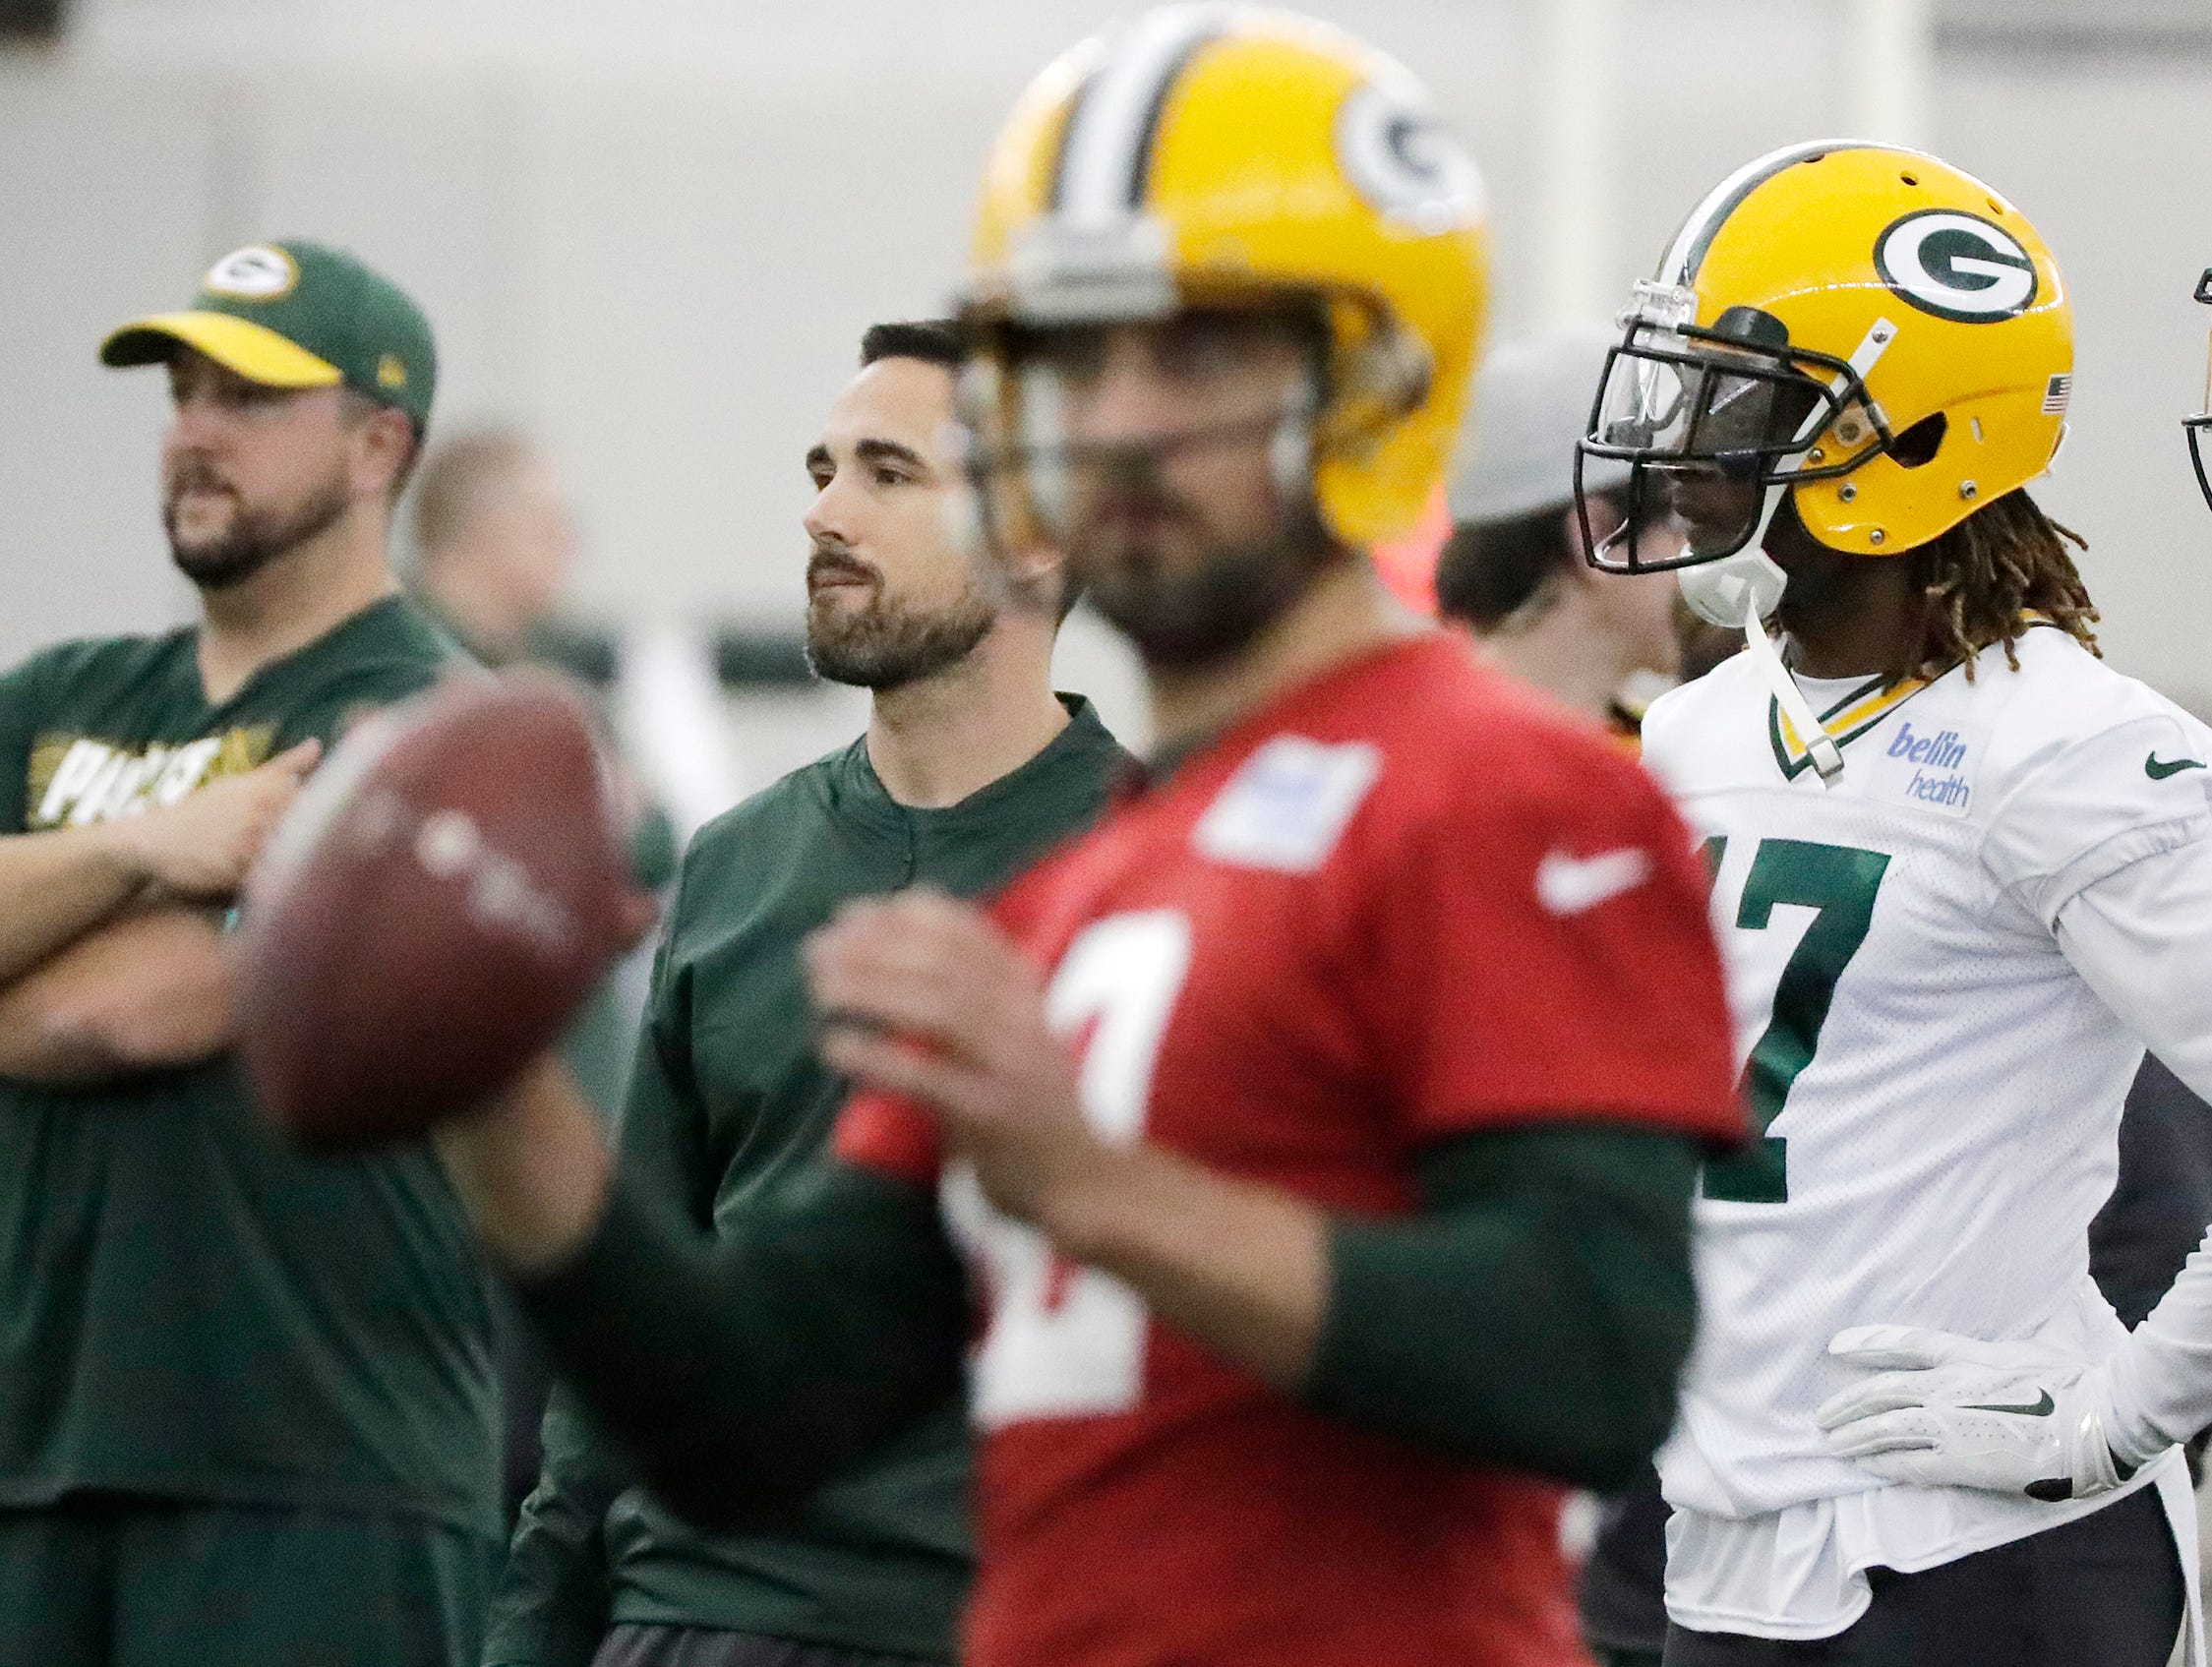 Green Bay Packers head coach Matt LaFleur watches an offensive drill during a team practice at the Don Hutson Center on Wednesday, April 24, 2019 in Ashwaubenon, Wis.